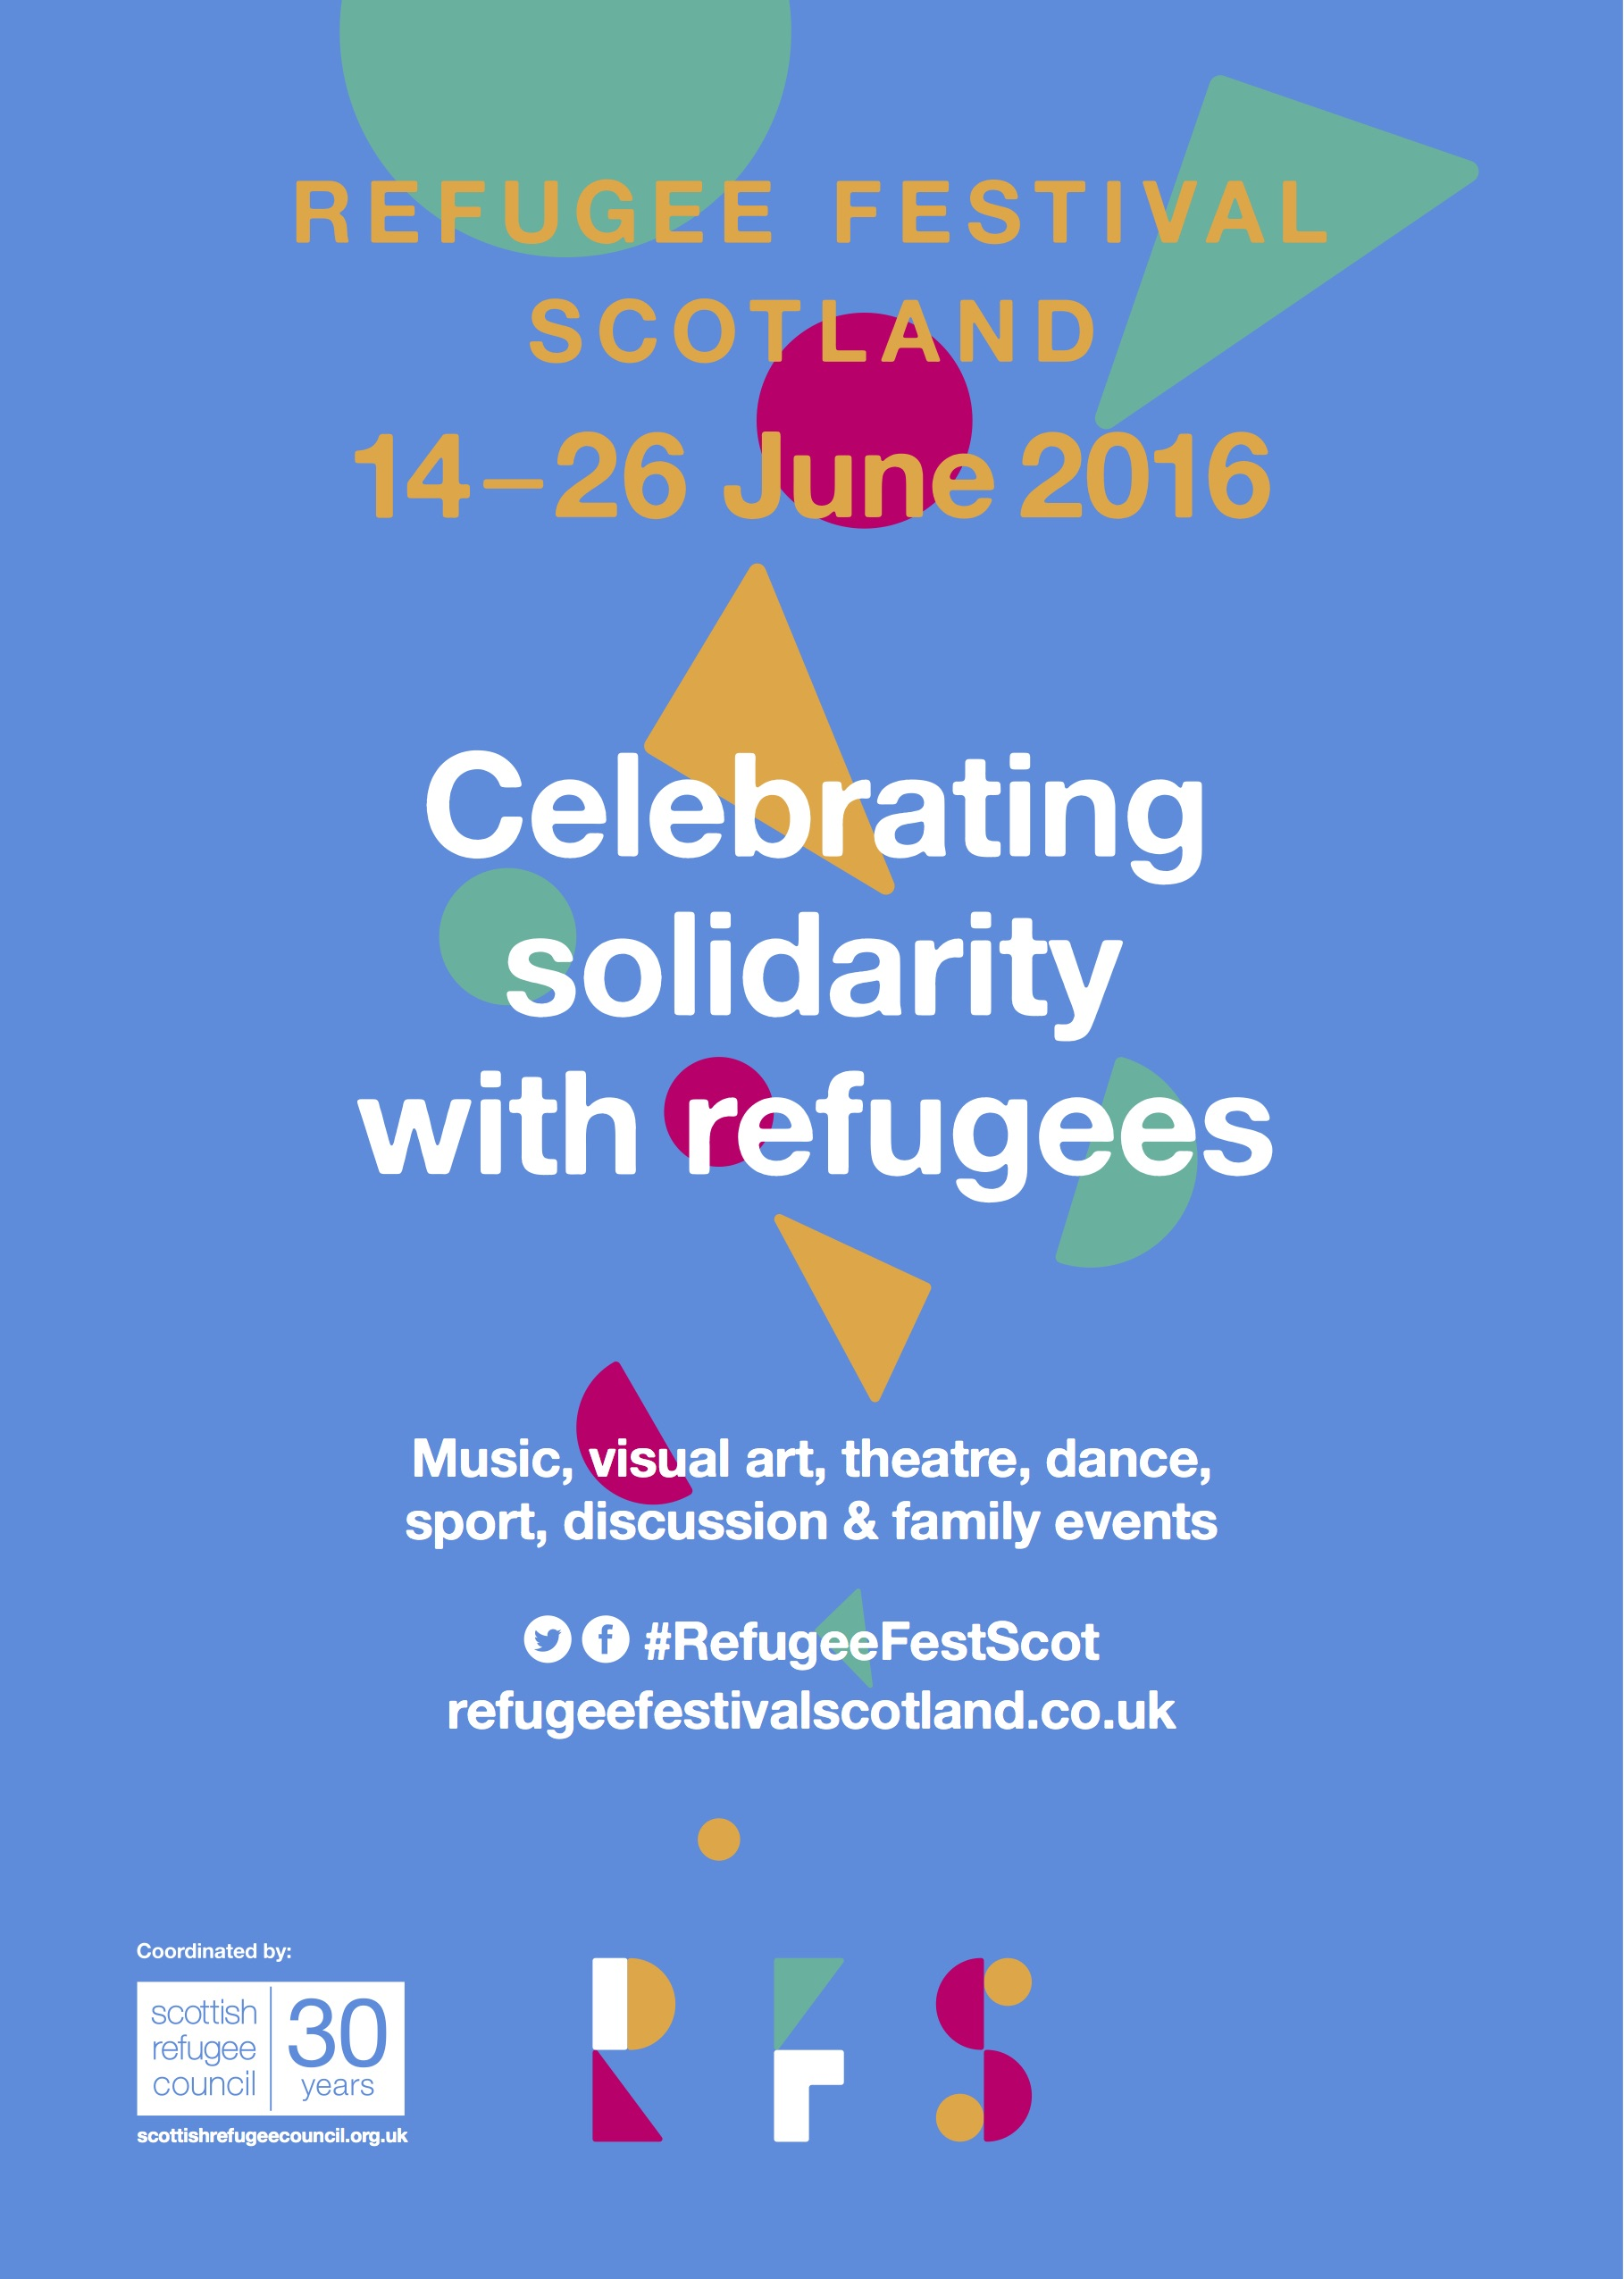 Refugee Festival Scotland – visibly and proudly standing in solidarity